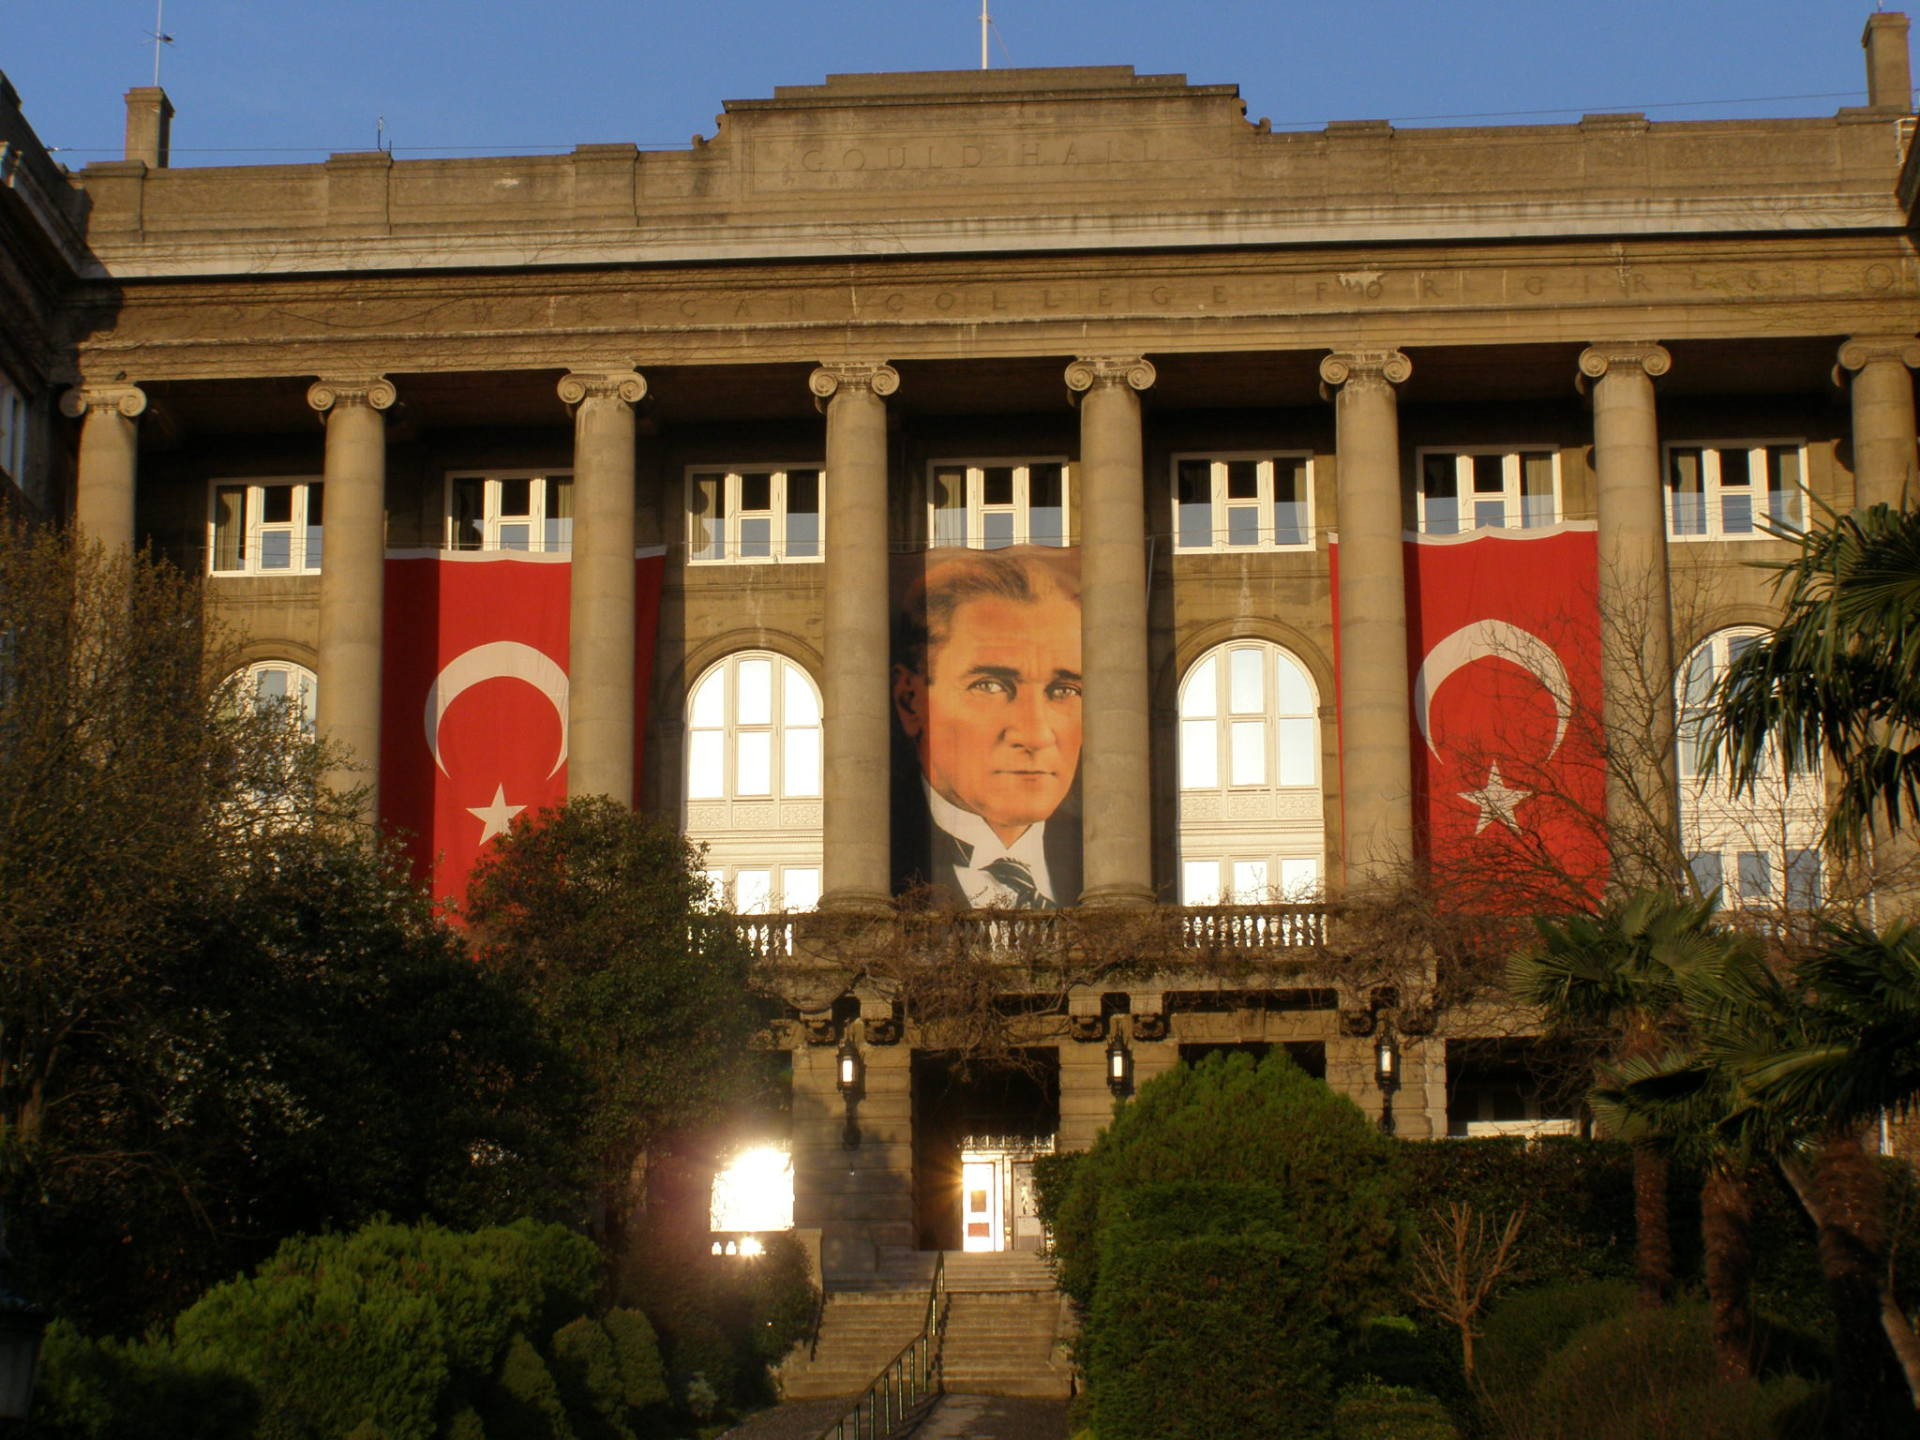 Robert College's Gould Hall is decked out for a national holiday. Istanbul, Turkey: chapter 63, You must only to love them. http://mershon.wordpress.com